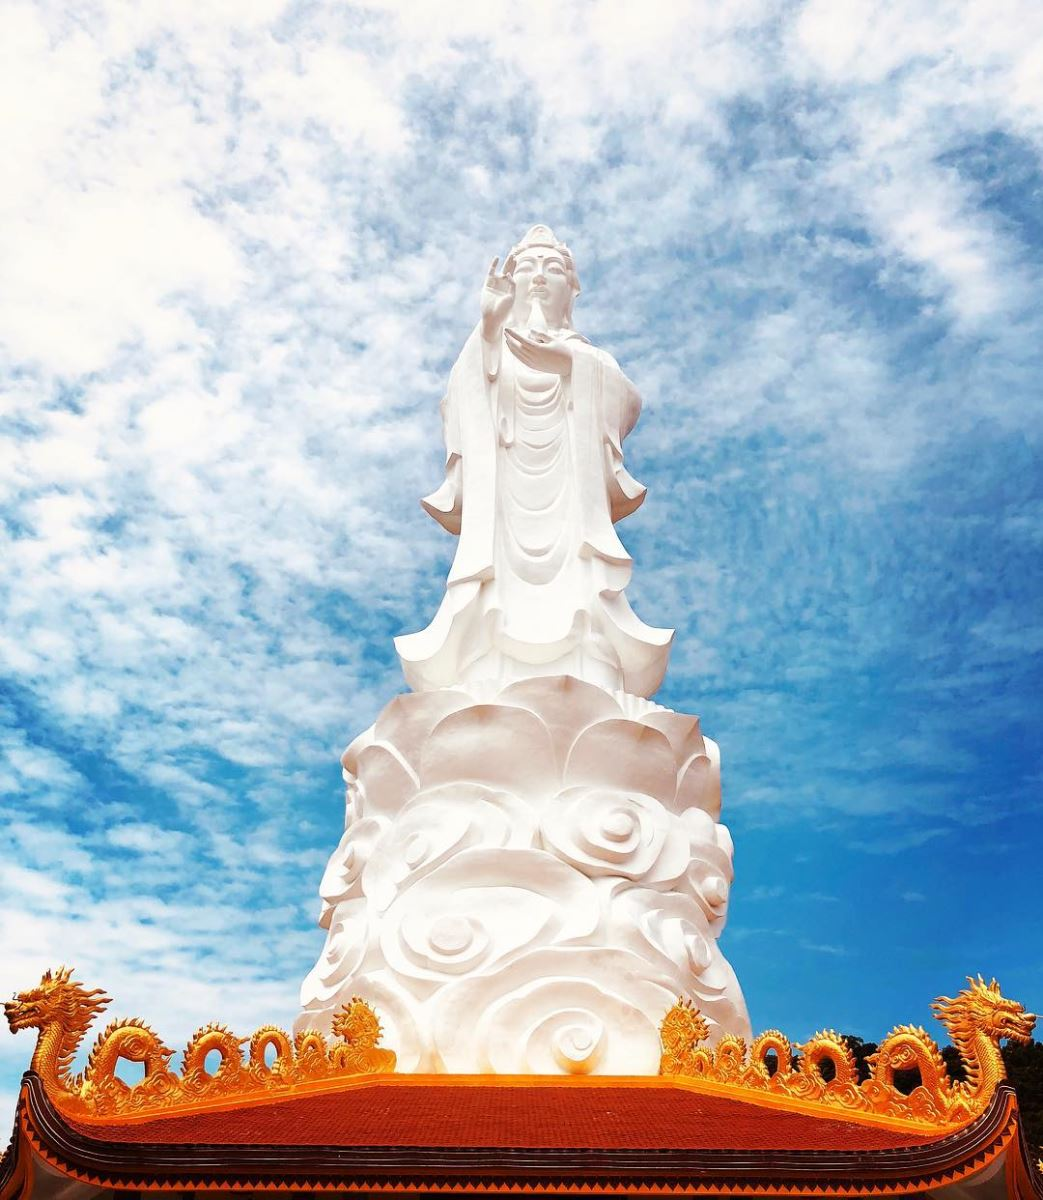 Tall Bodhisattva statue in the middle of the clear blue sky